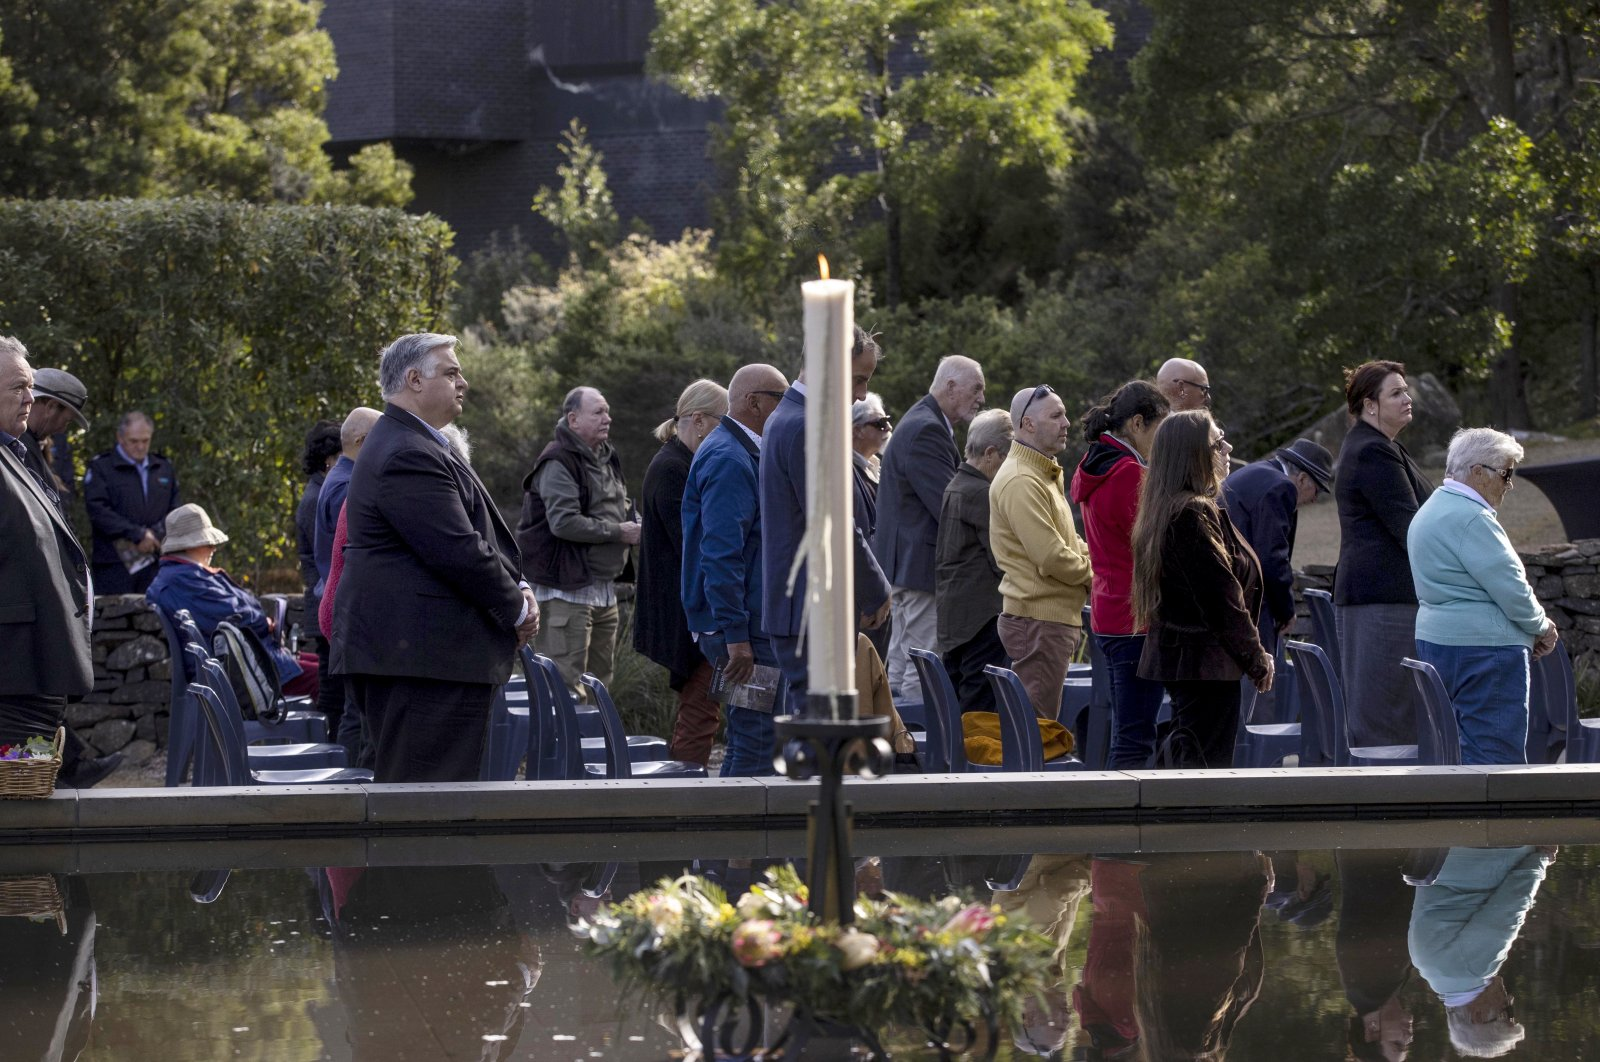 People attend a ceremony at Port Arthur as Australia marks the 25th anniversary of a lone gunman killing 35 people in Tasmania state in a massacre that galvanized the nation into tightening gun laws, Tasmania, Australia, April 28, 2021. (Pool via AP)